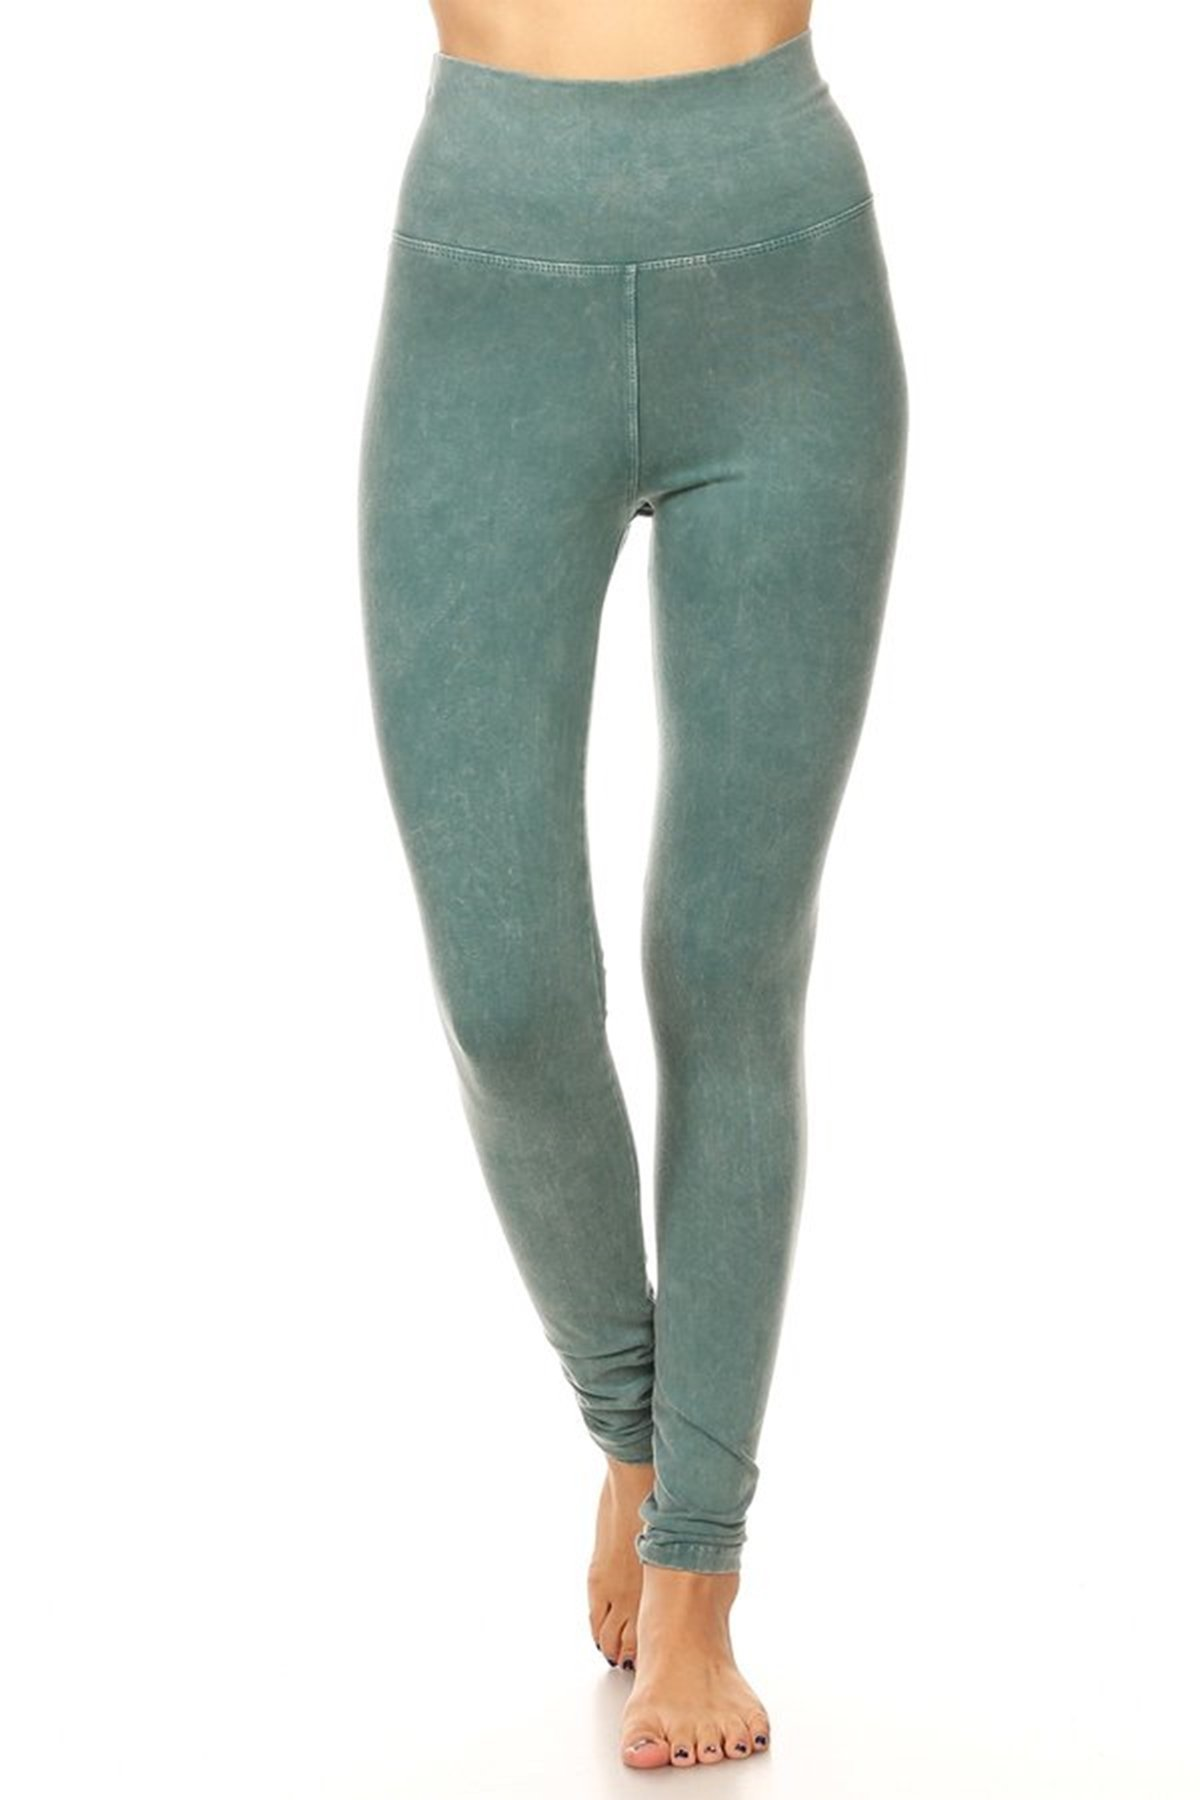 T Party Womens Mineral Wash Fold Over Legging SEA S